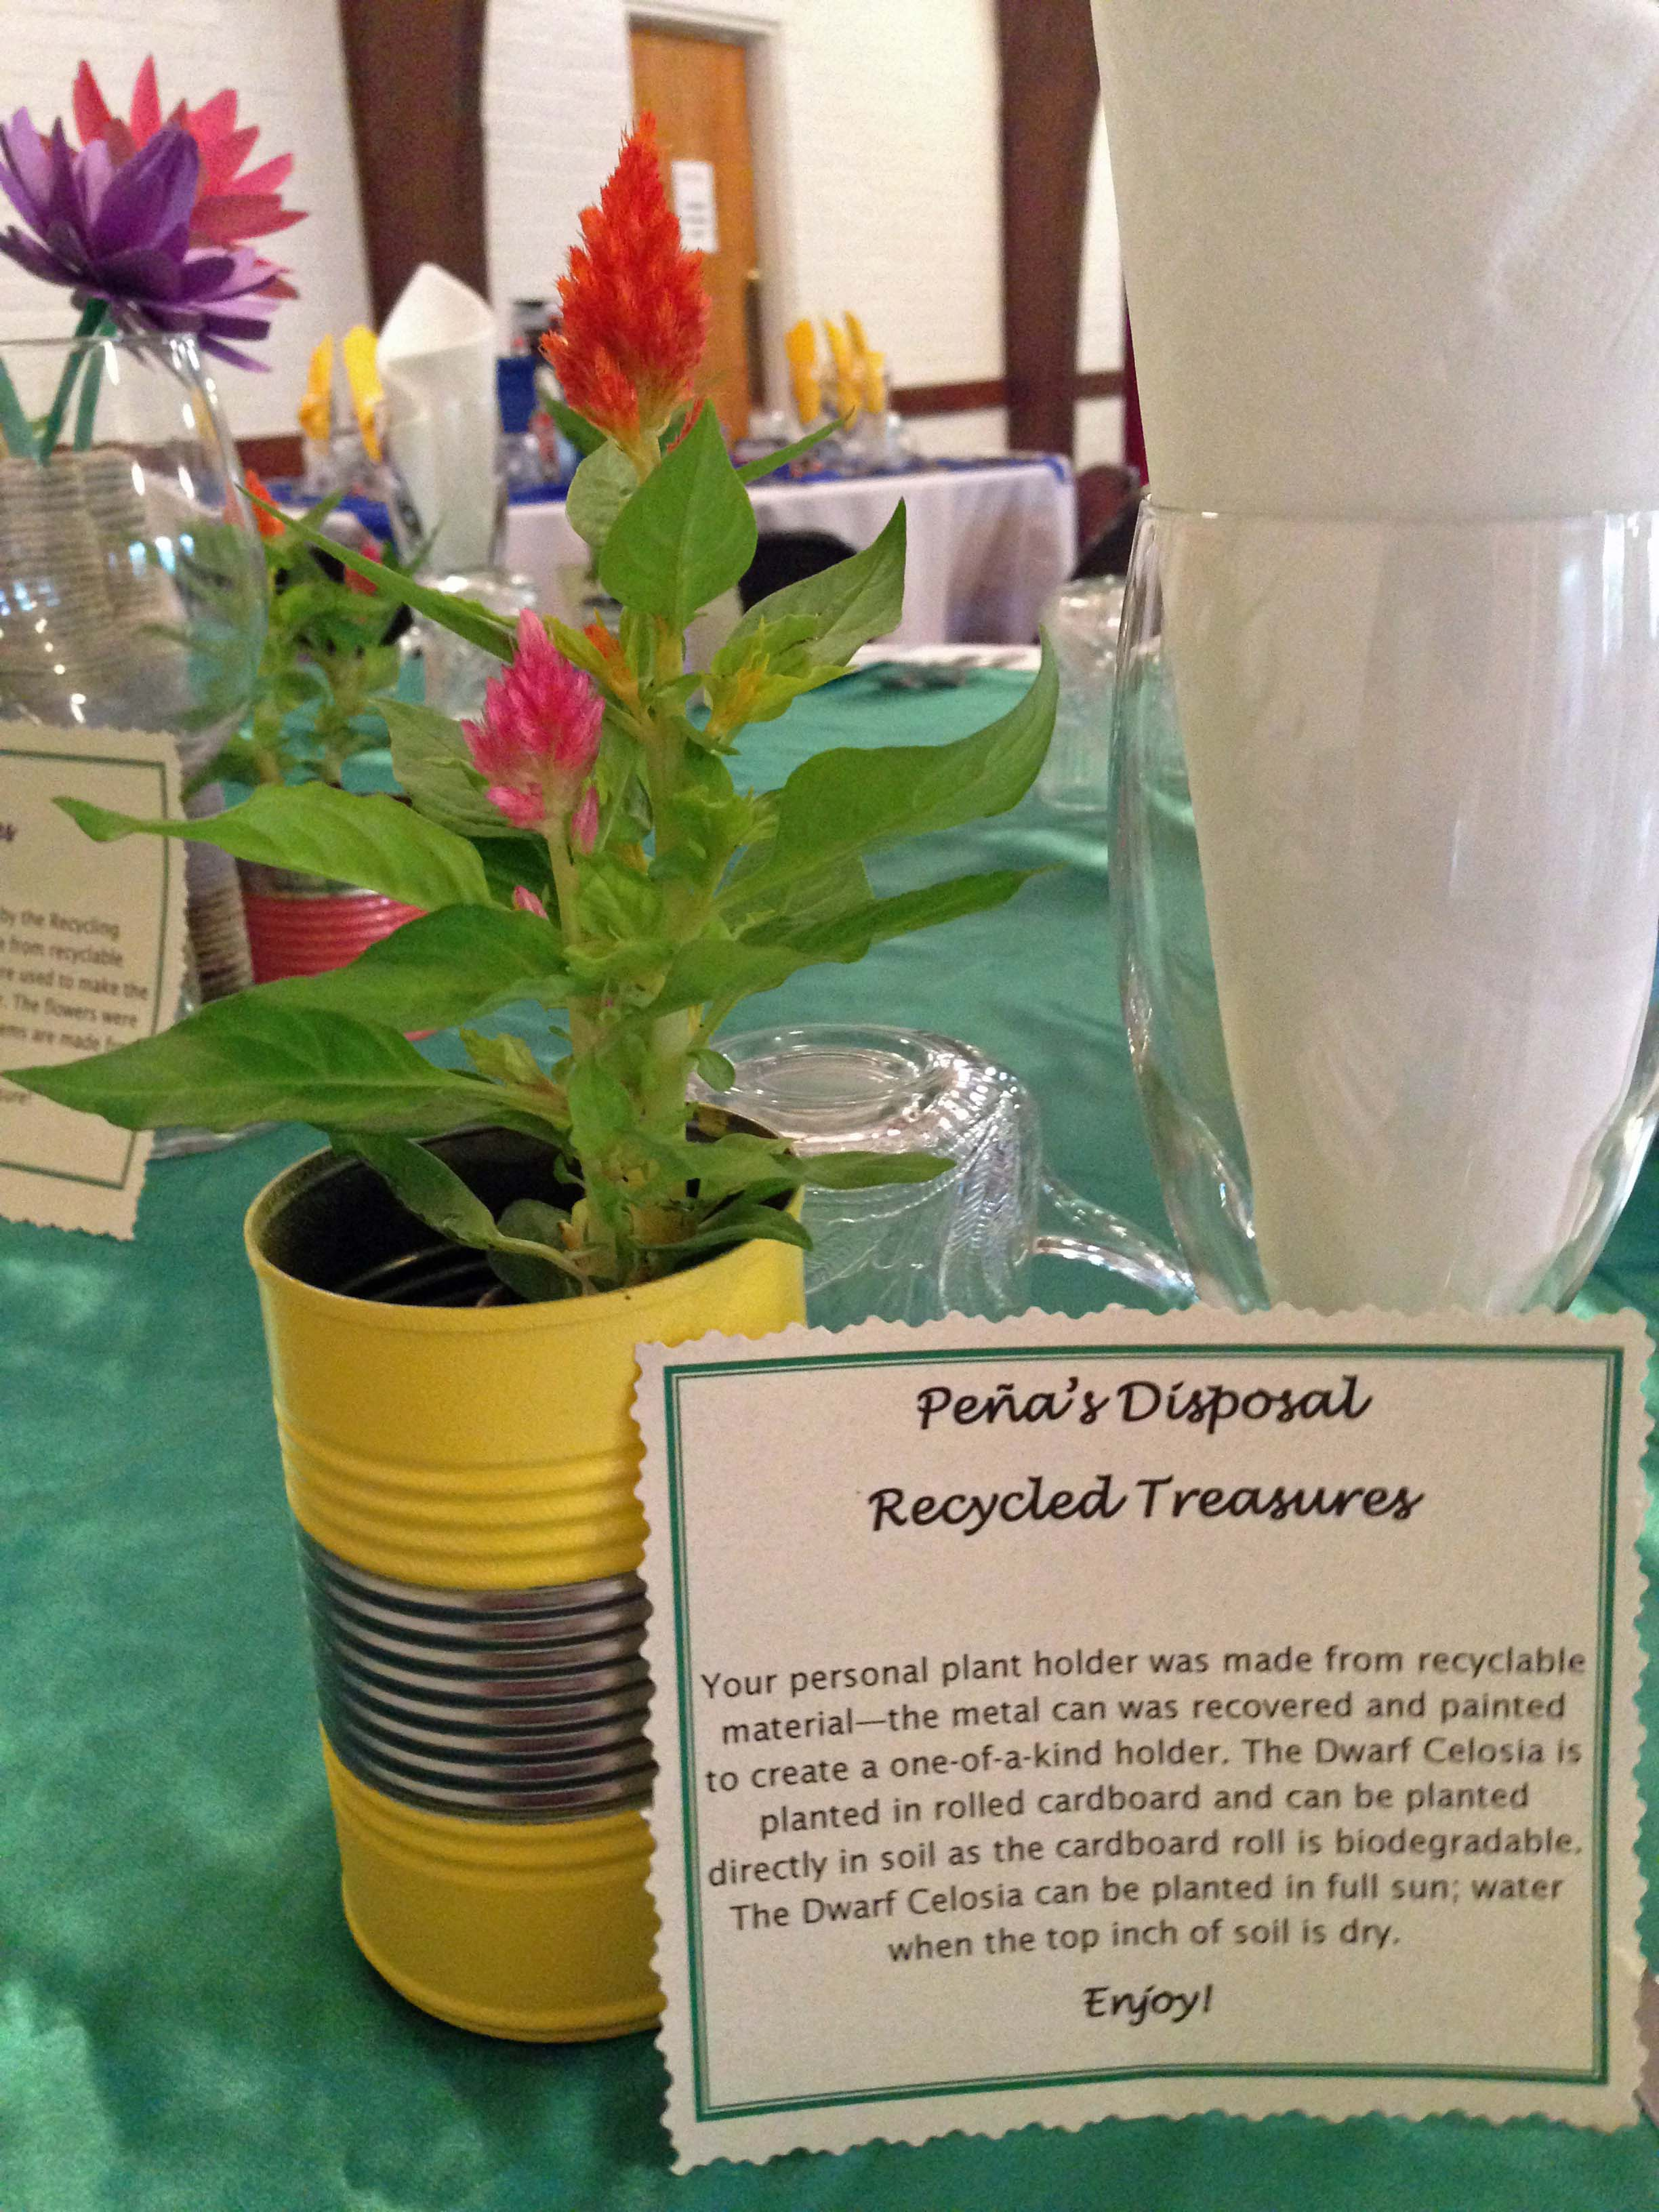 Peña's Disposal Recycling Treasures 2015